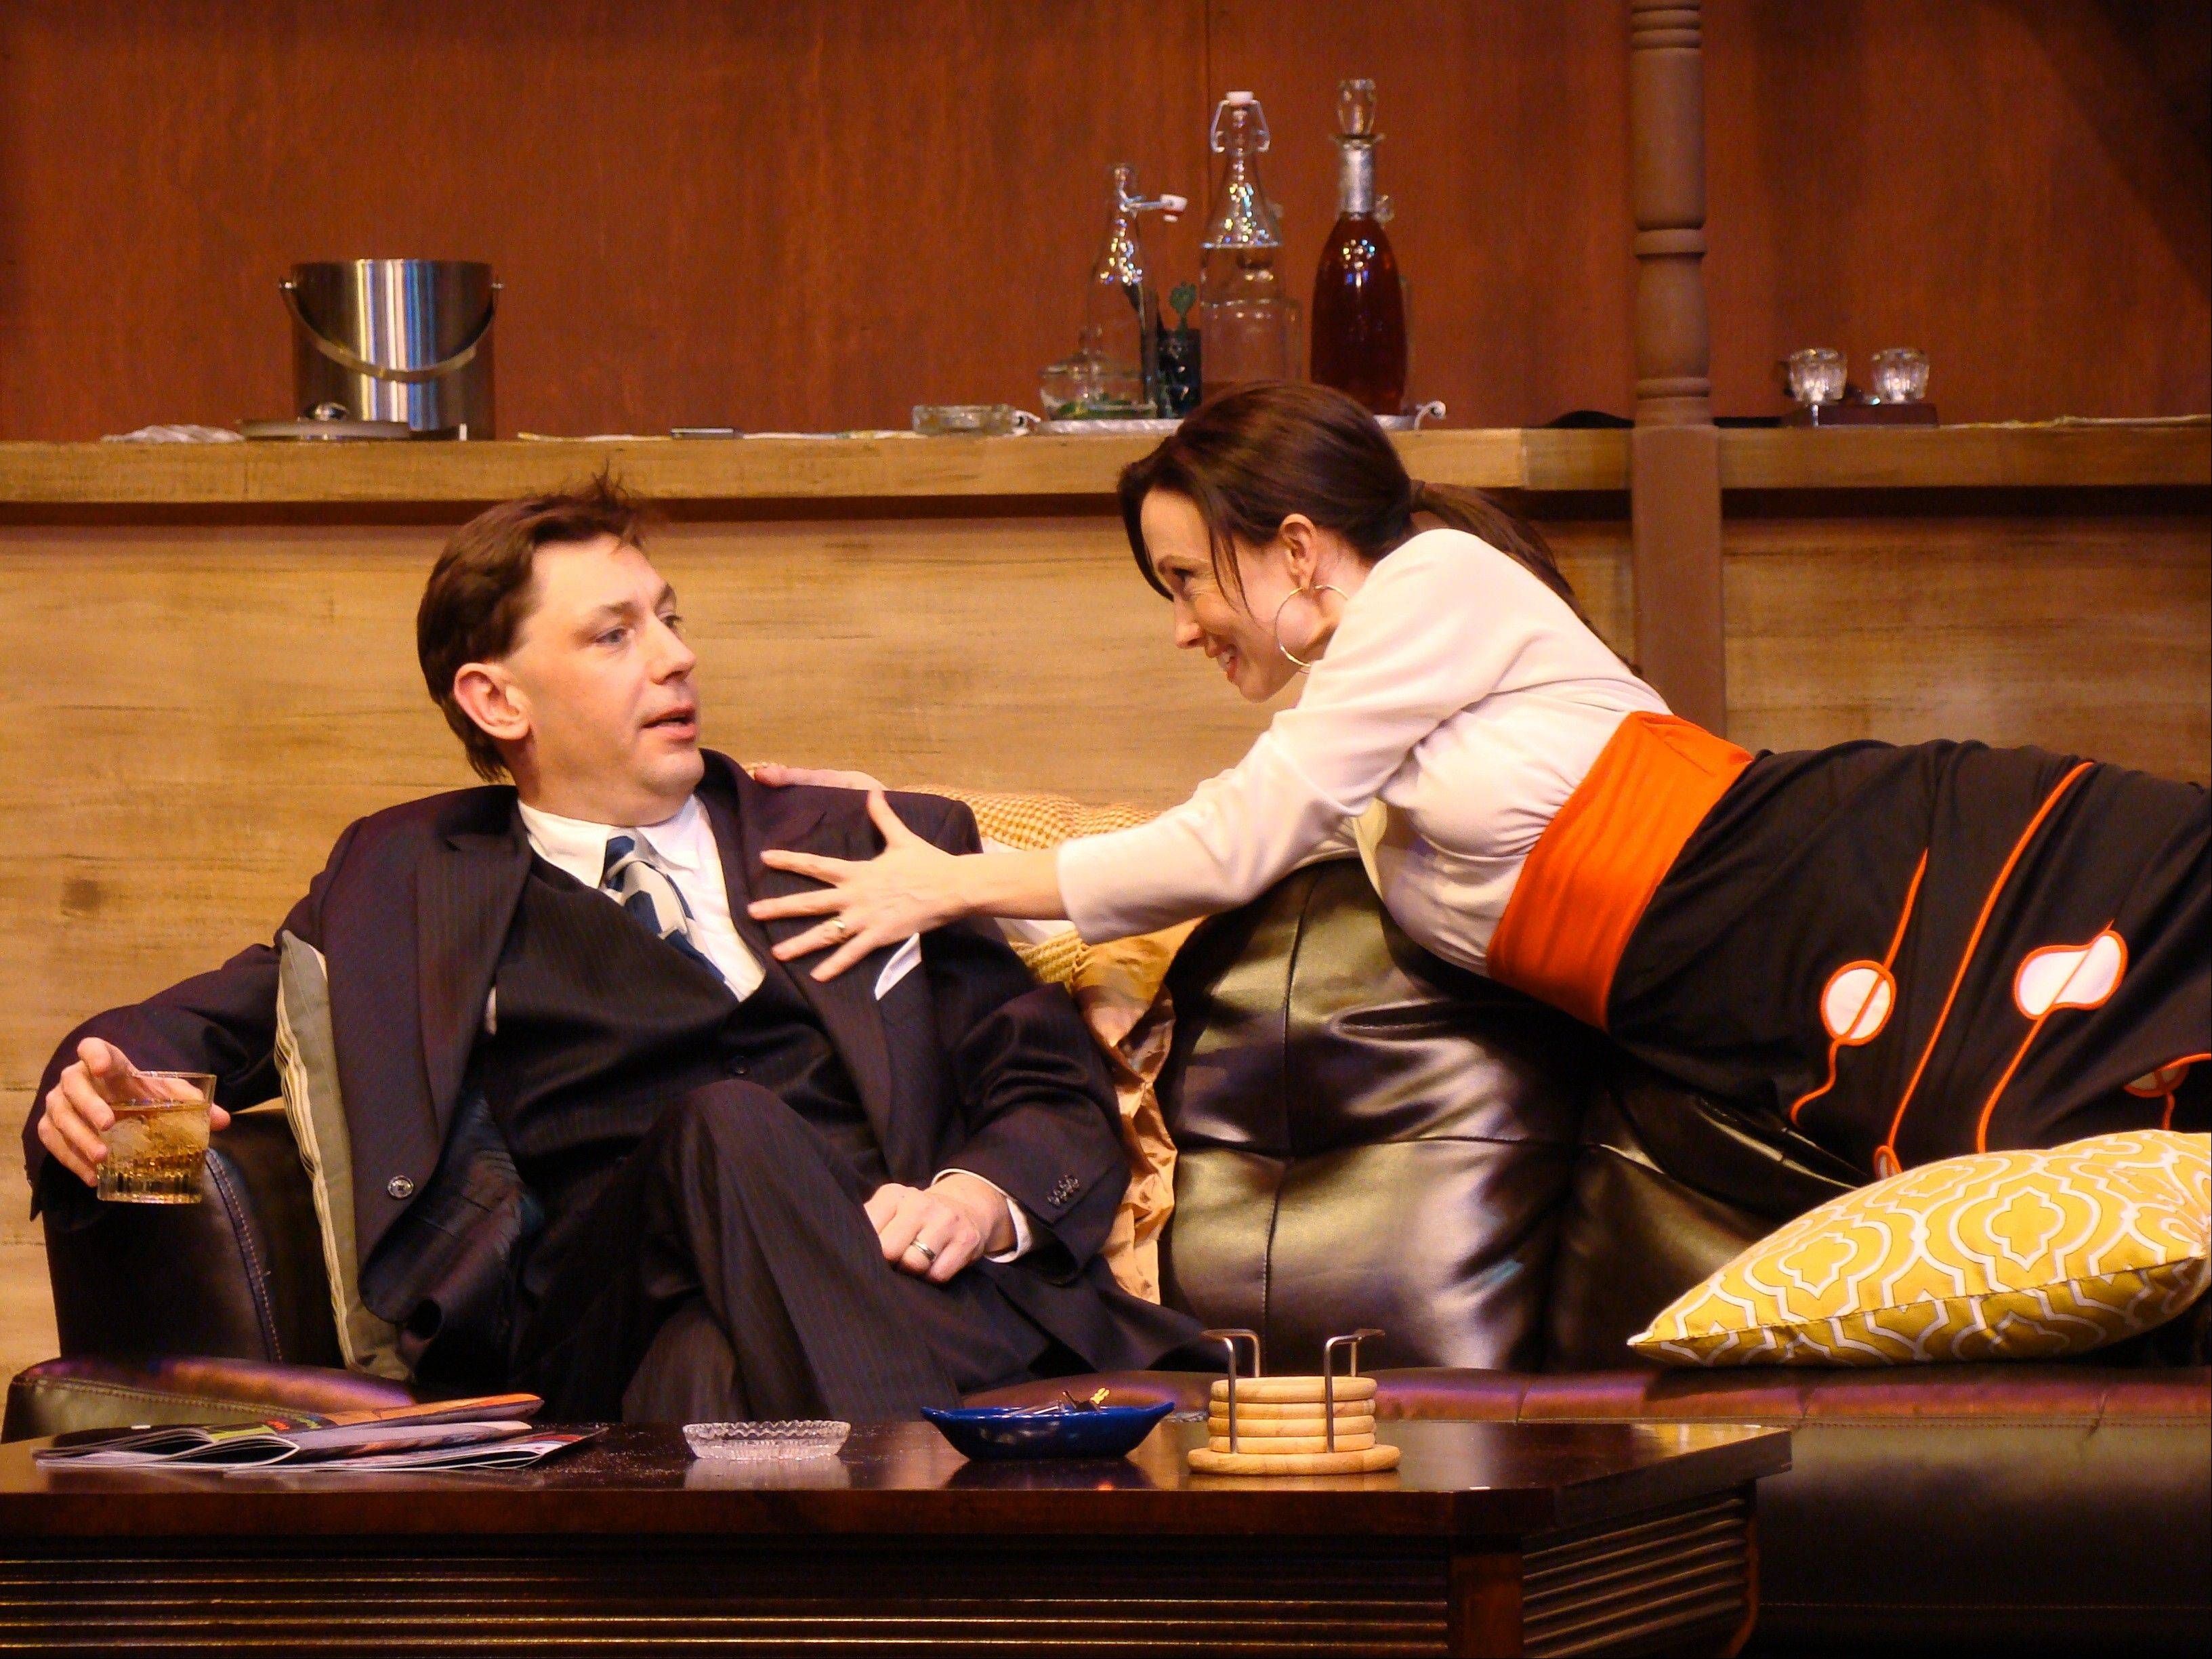 "Janet (Kelly Lynn Hogan) has less than amorous plans for her husband Derek (Jonathan Nichols) in director Robin M. Hughes' production of the comic thriller ""Accomplice,"" running through April 26 at the Metropolis Performing Arts Centre in Arlington Heights."